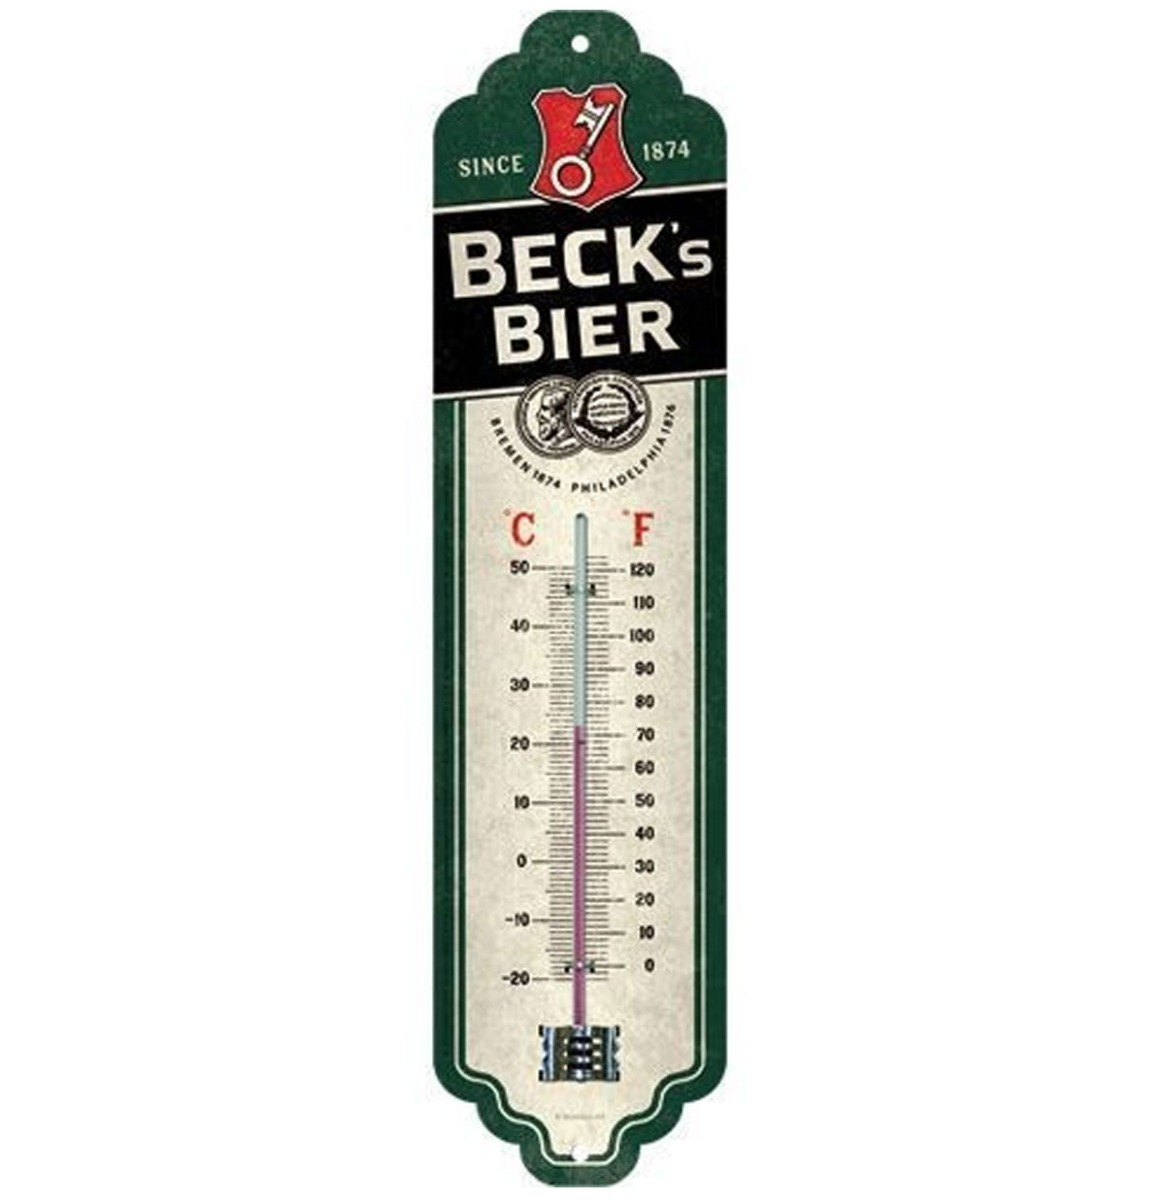 Beck's Bier Logo Green Thermometer